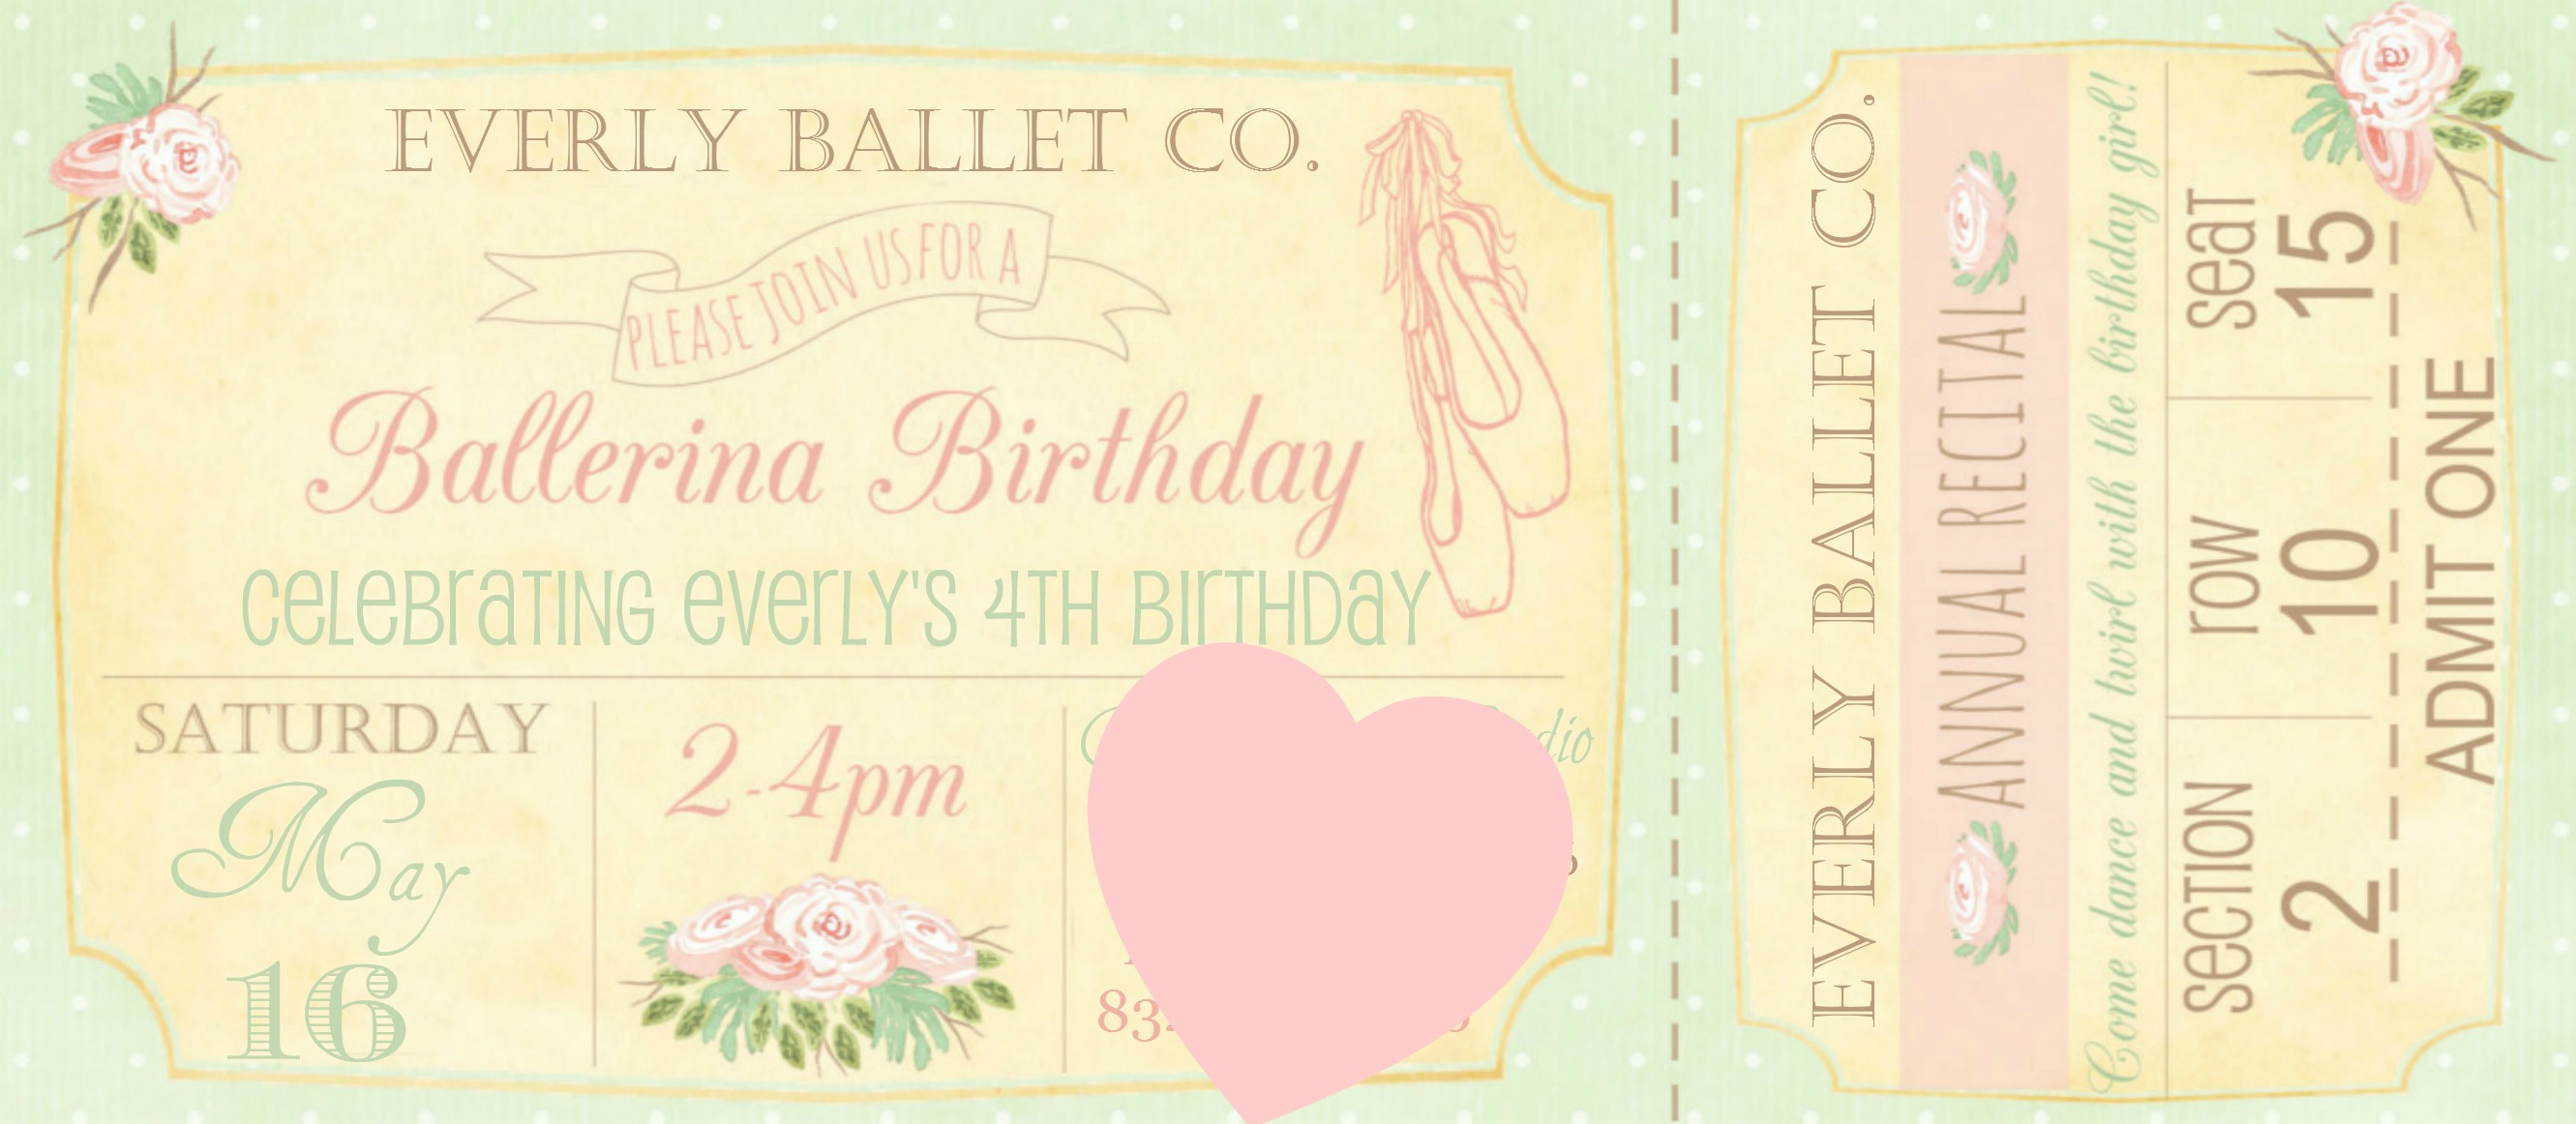 Everly's Invite